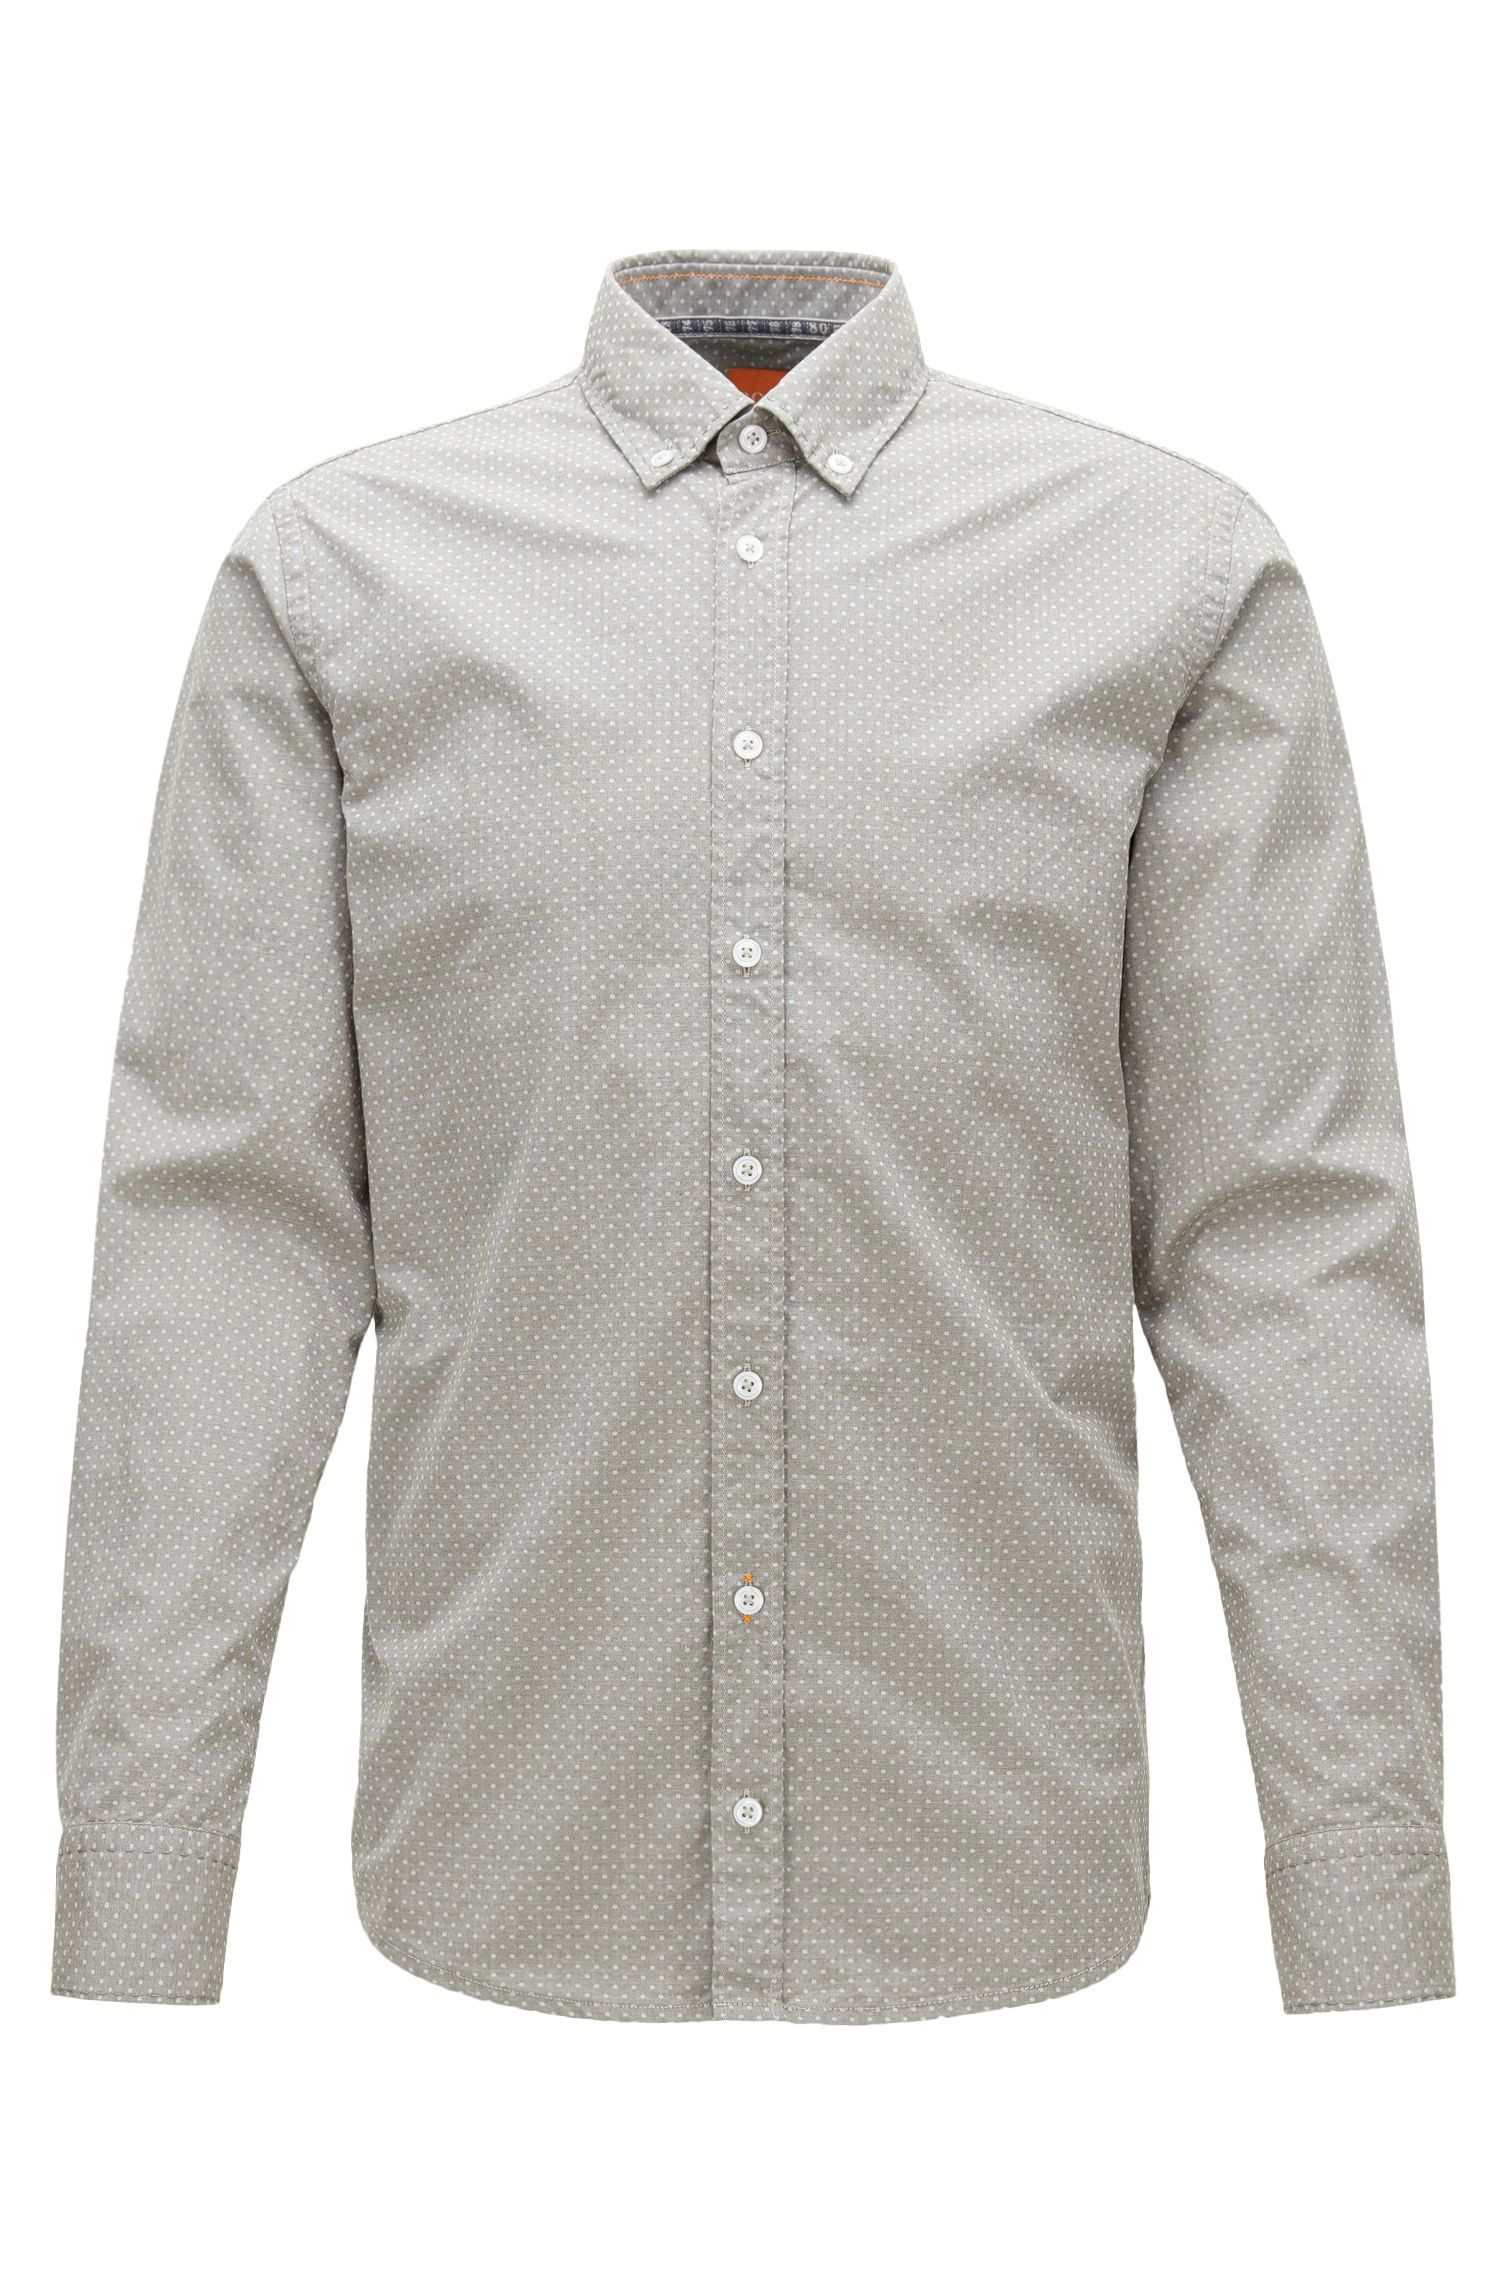 Slim-fit shirt in heathered cotton